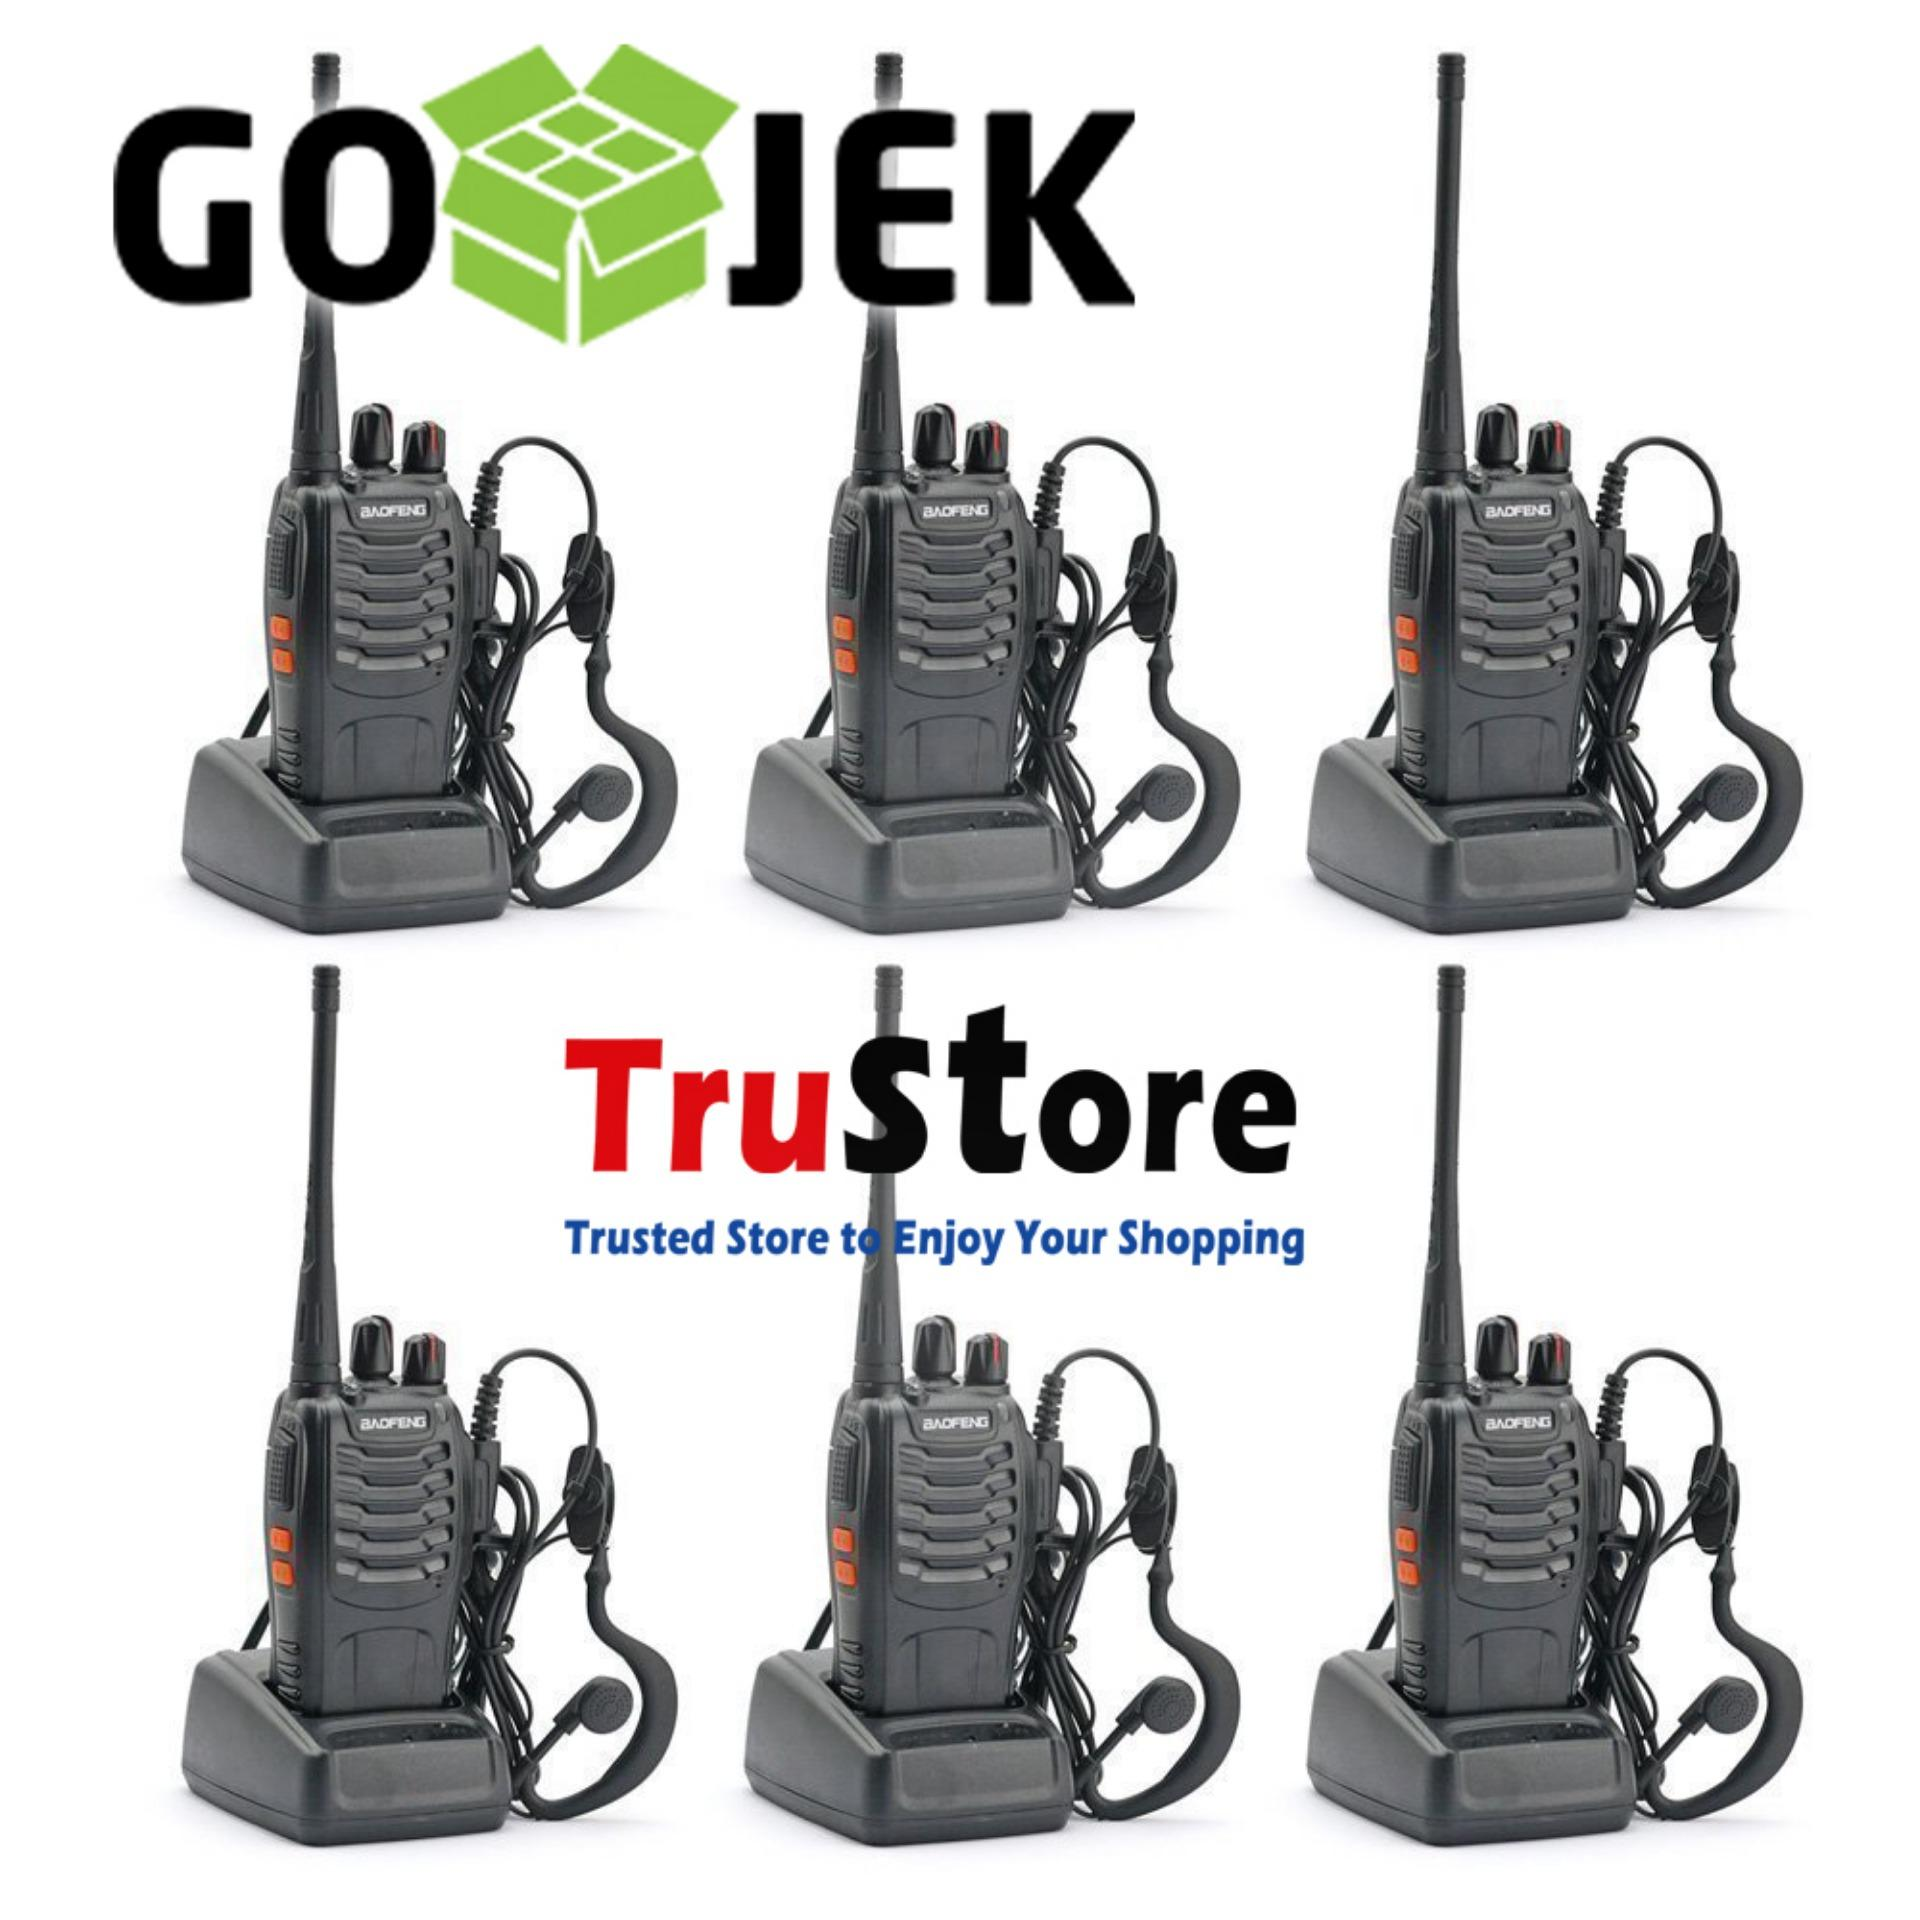 Beli Talky Ht Baofeng Store Marwanto606 Uv5r Handy Talkie Walkie Bf Dual Band Paket 6 Unit Radio 888s